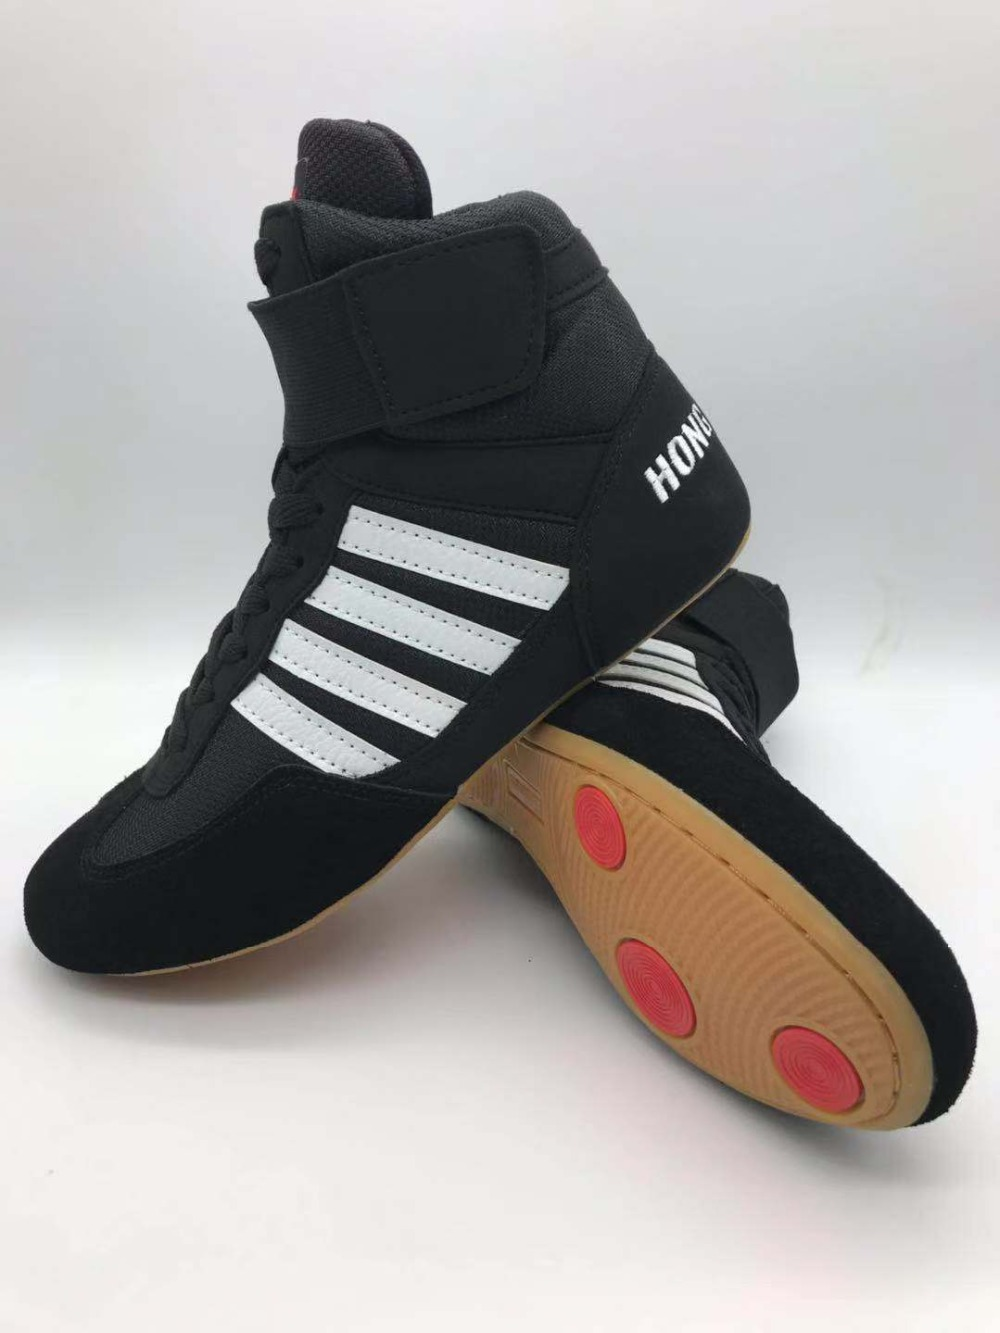 Men Wrestling Shoes High Boxing Shoes Rubber Outsole Breathable Pro Wrestling Gear For Men And Women Boxeo